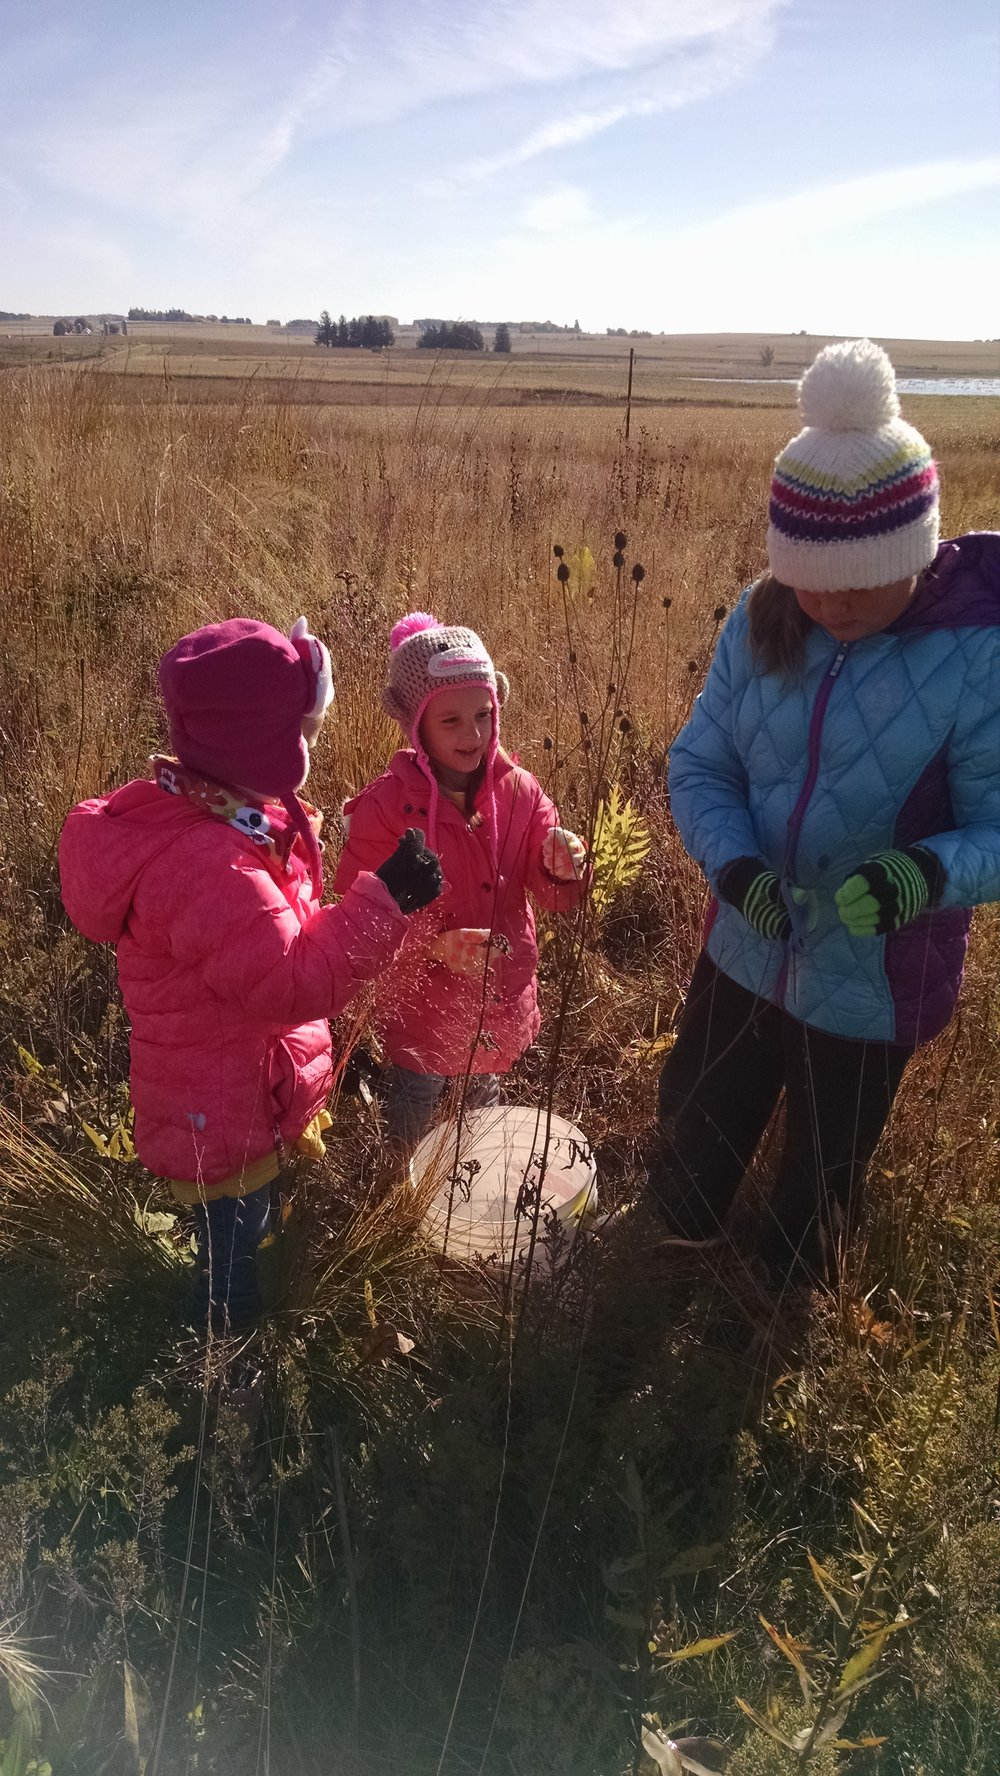 Children help collect seeds to help create prairie habitats close to home.